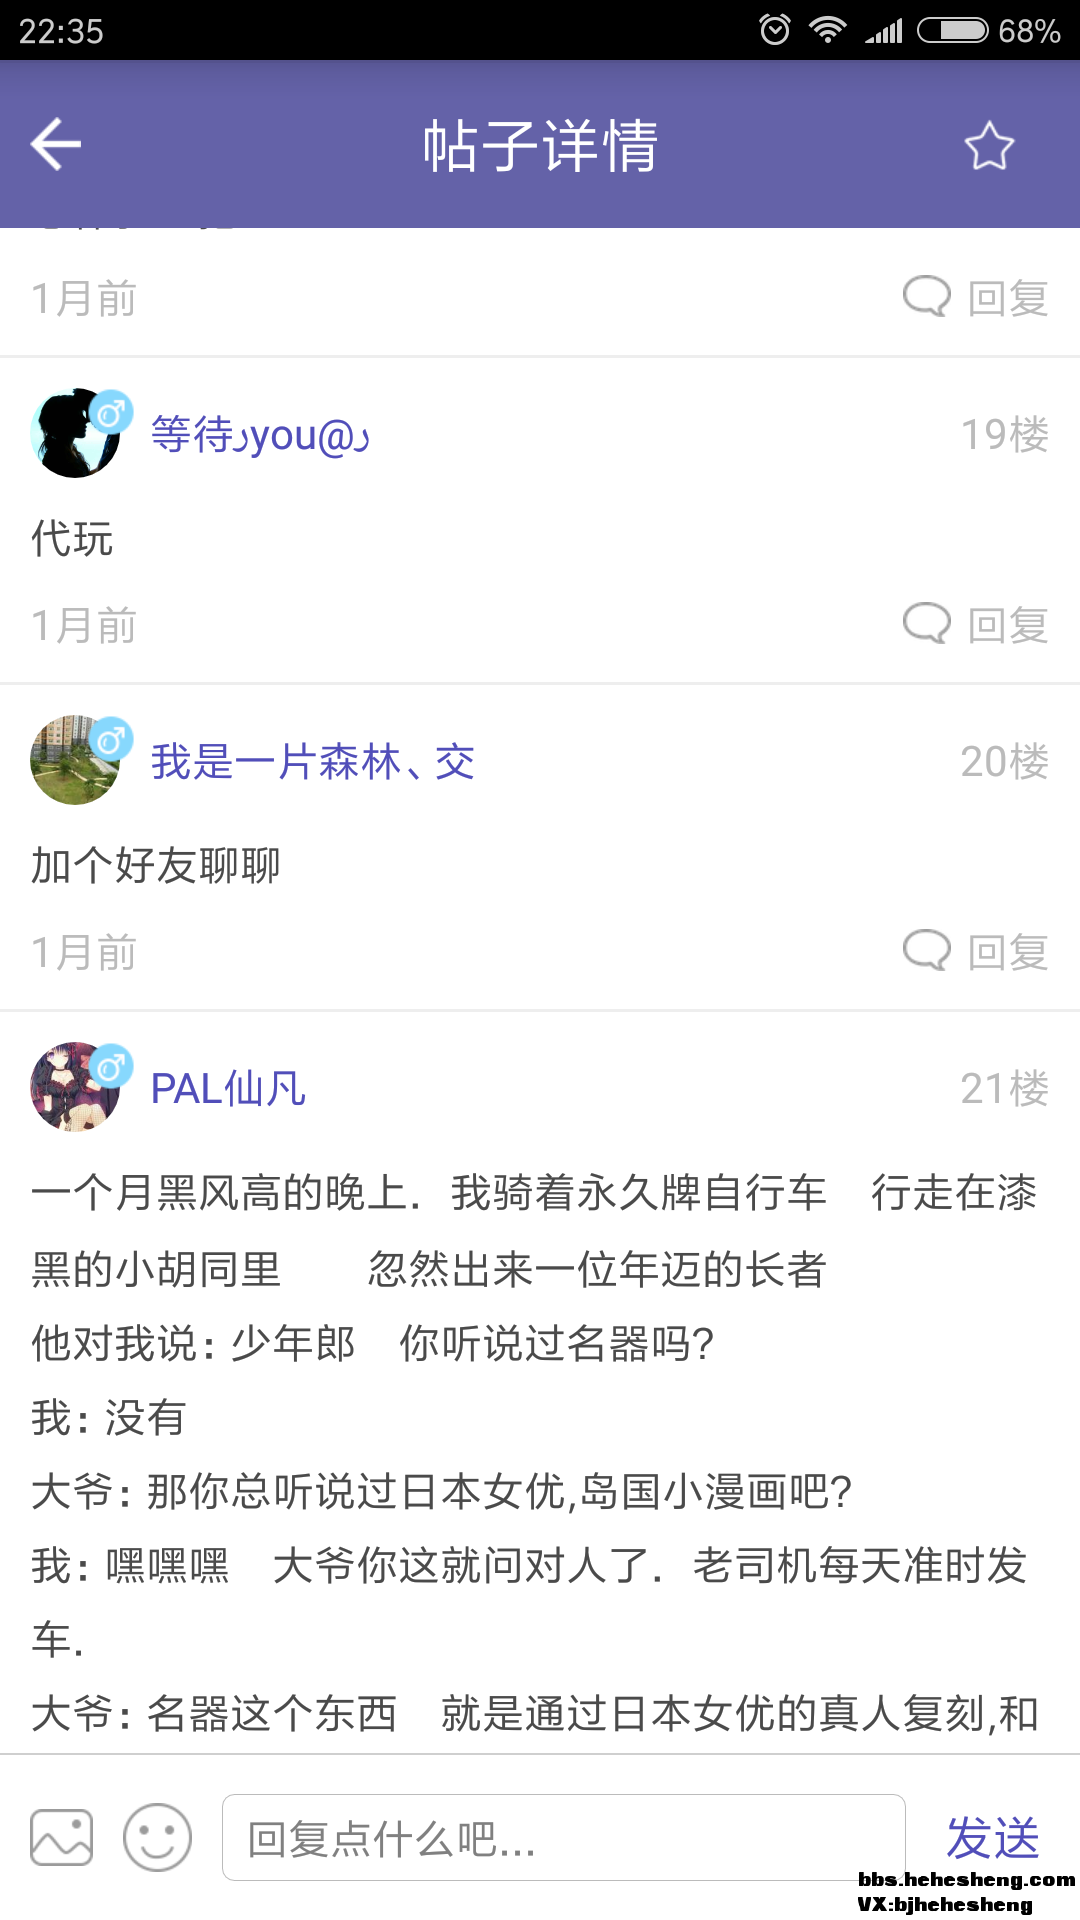 Screenshot_2018-01-19-22-35-29-968_com.mengxia.lo.png